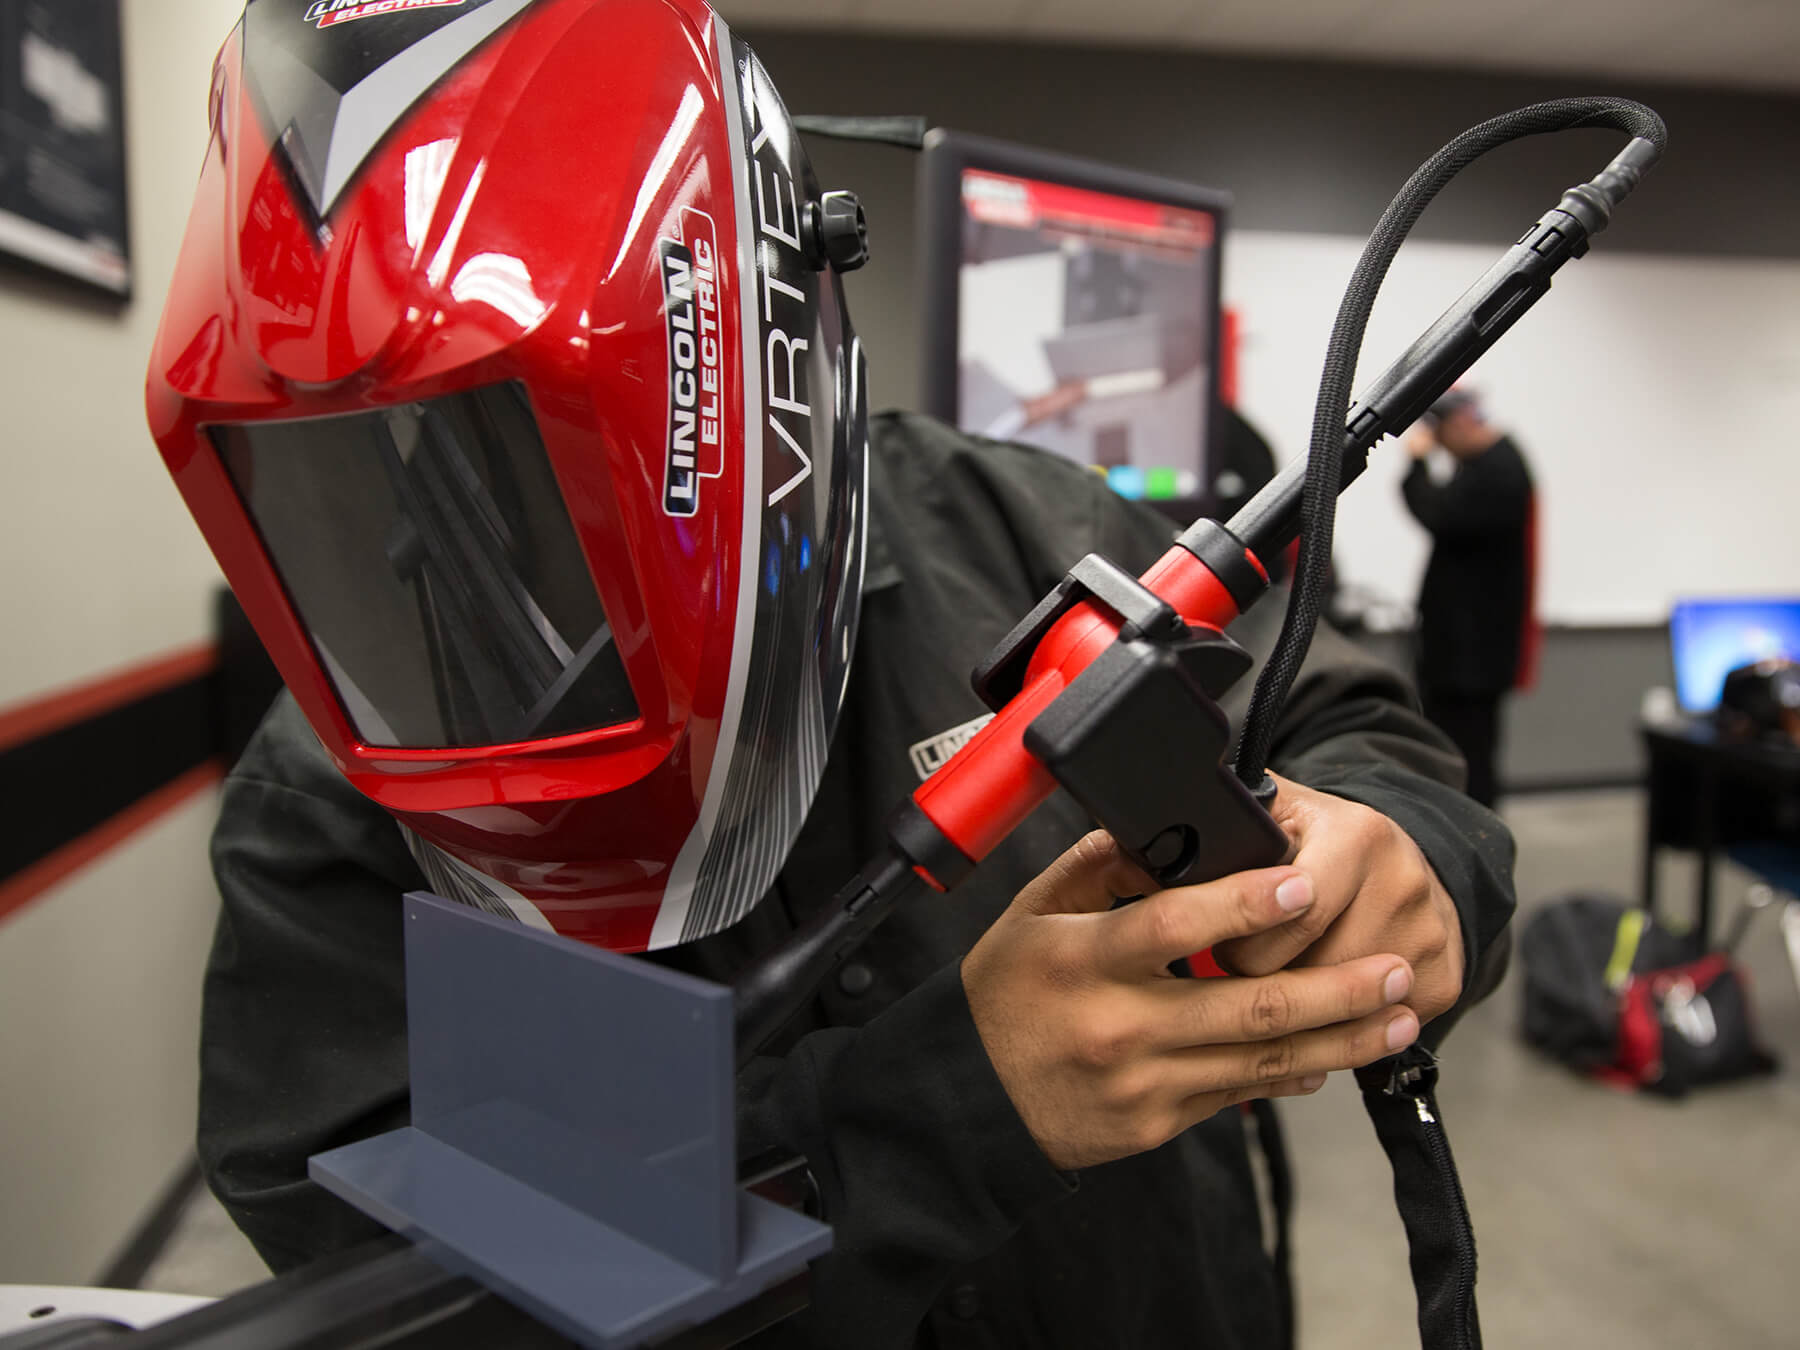 Welding student practicing welding with the Lincoln virtual welder in Welding lab